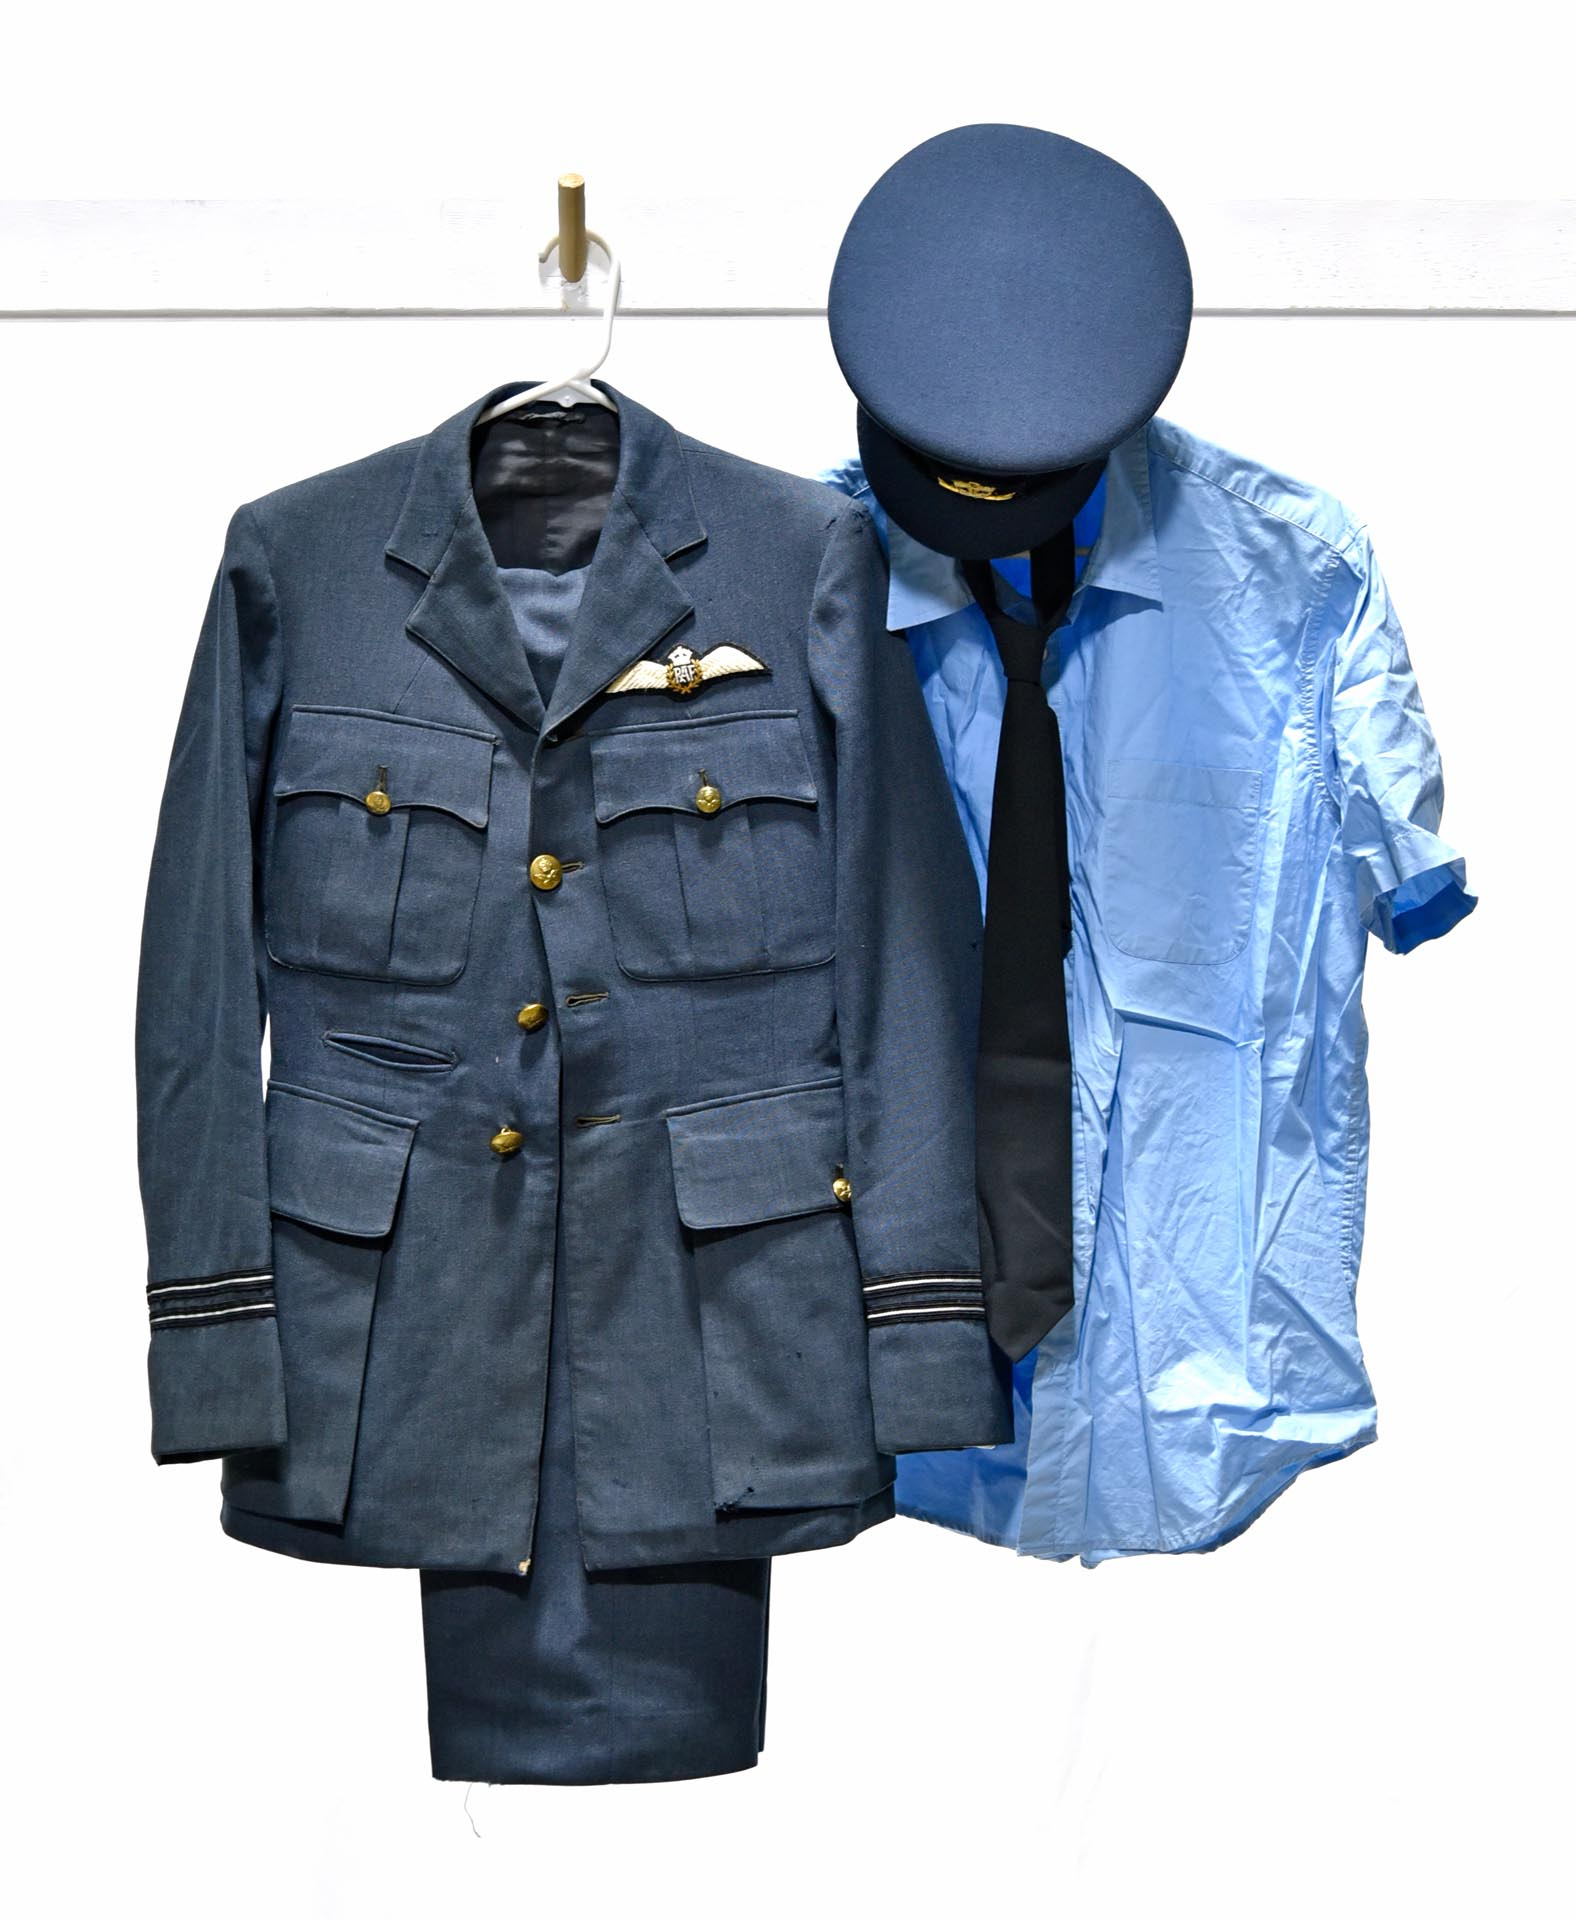 WWII British Royal Air Force Service Uniform Including Cap and Boots